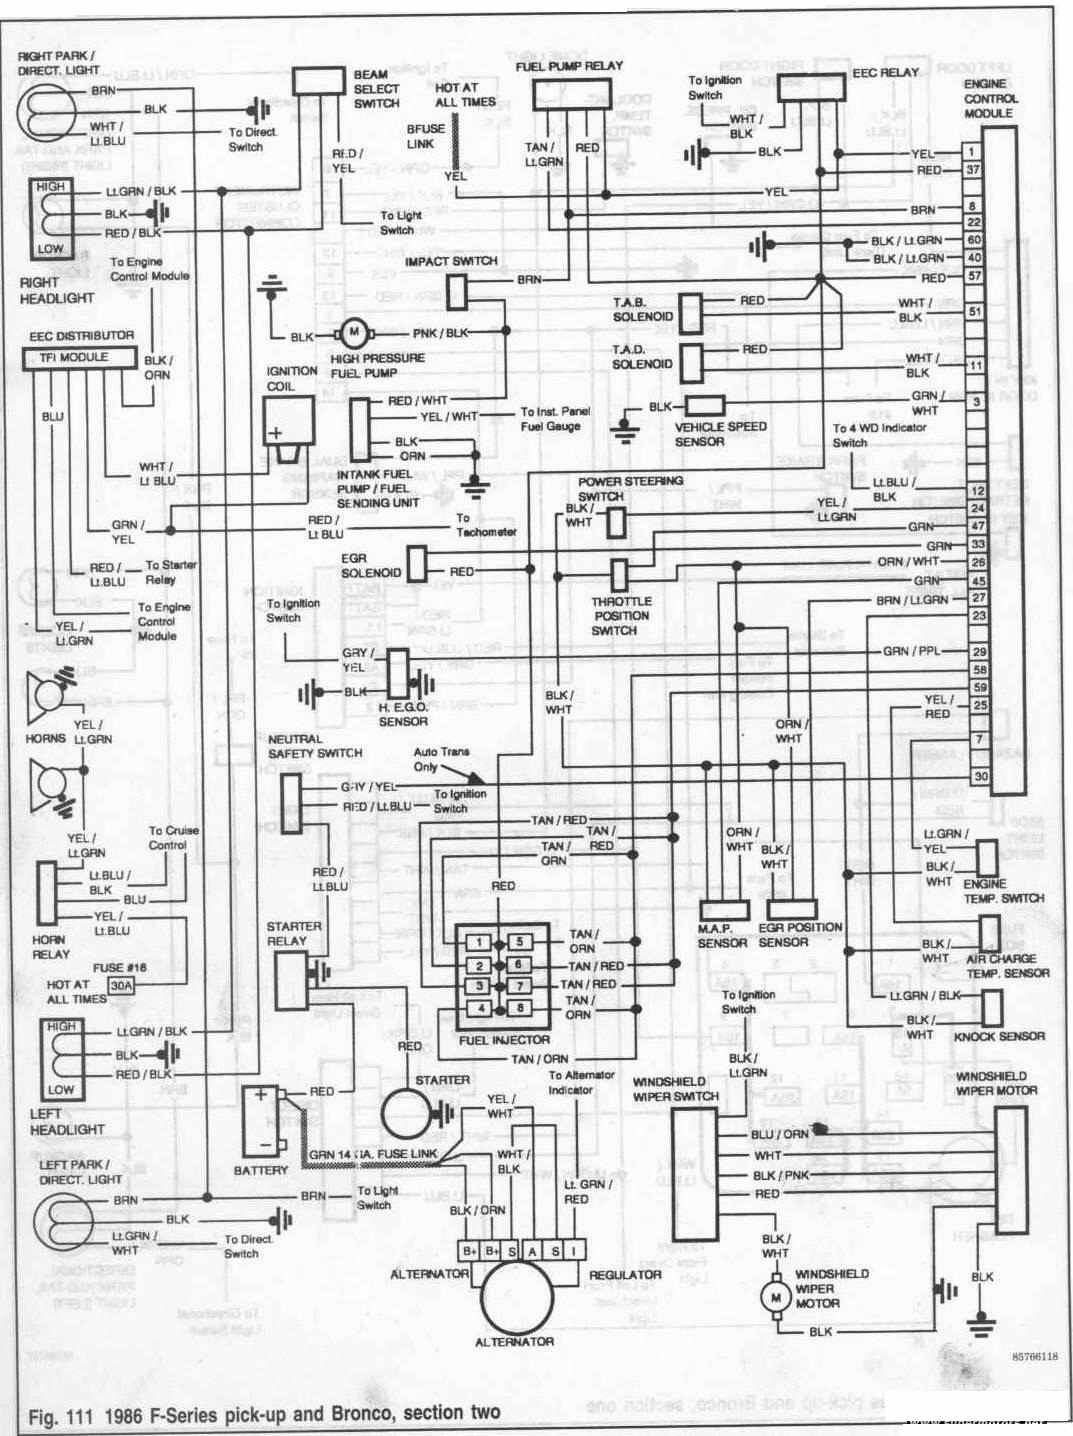 ford bronco and f-series pickup 1986 engine control module ... 1986 ford f150 radio wiring diagram 1986 ford thunderbird radio wiring diagram